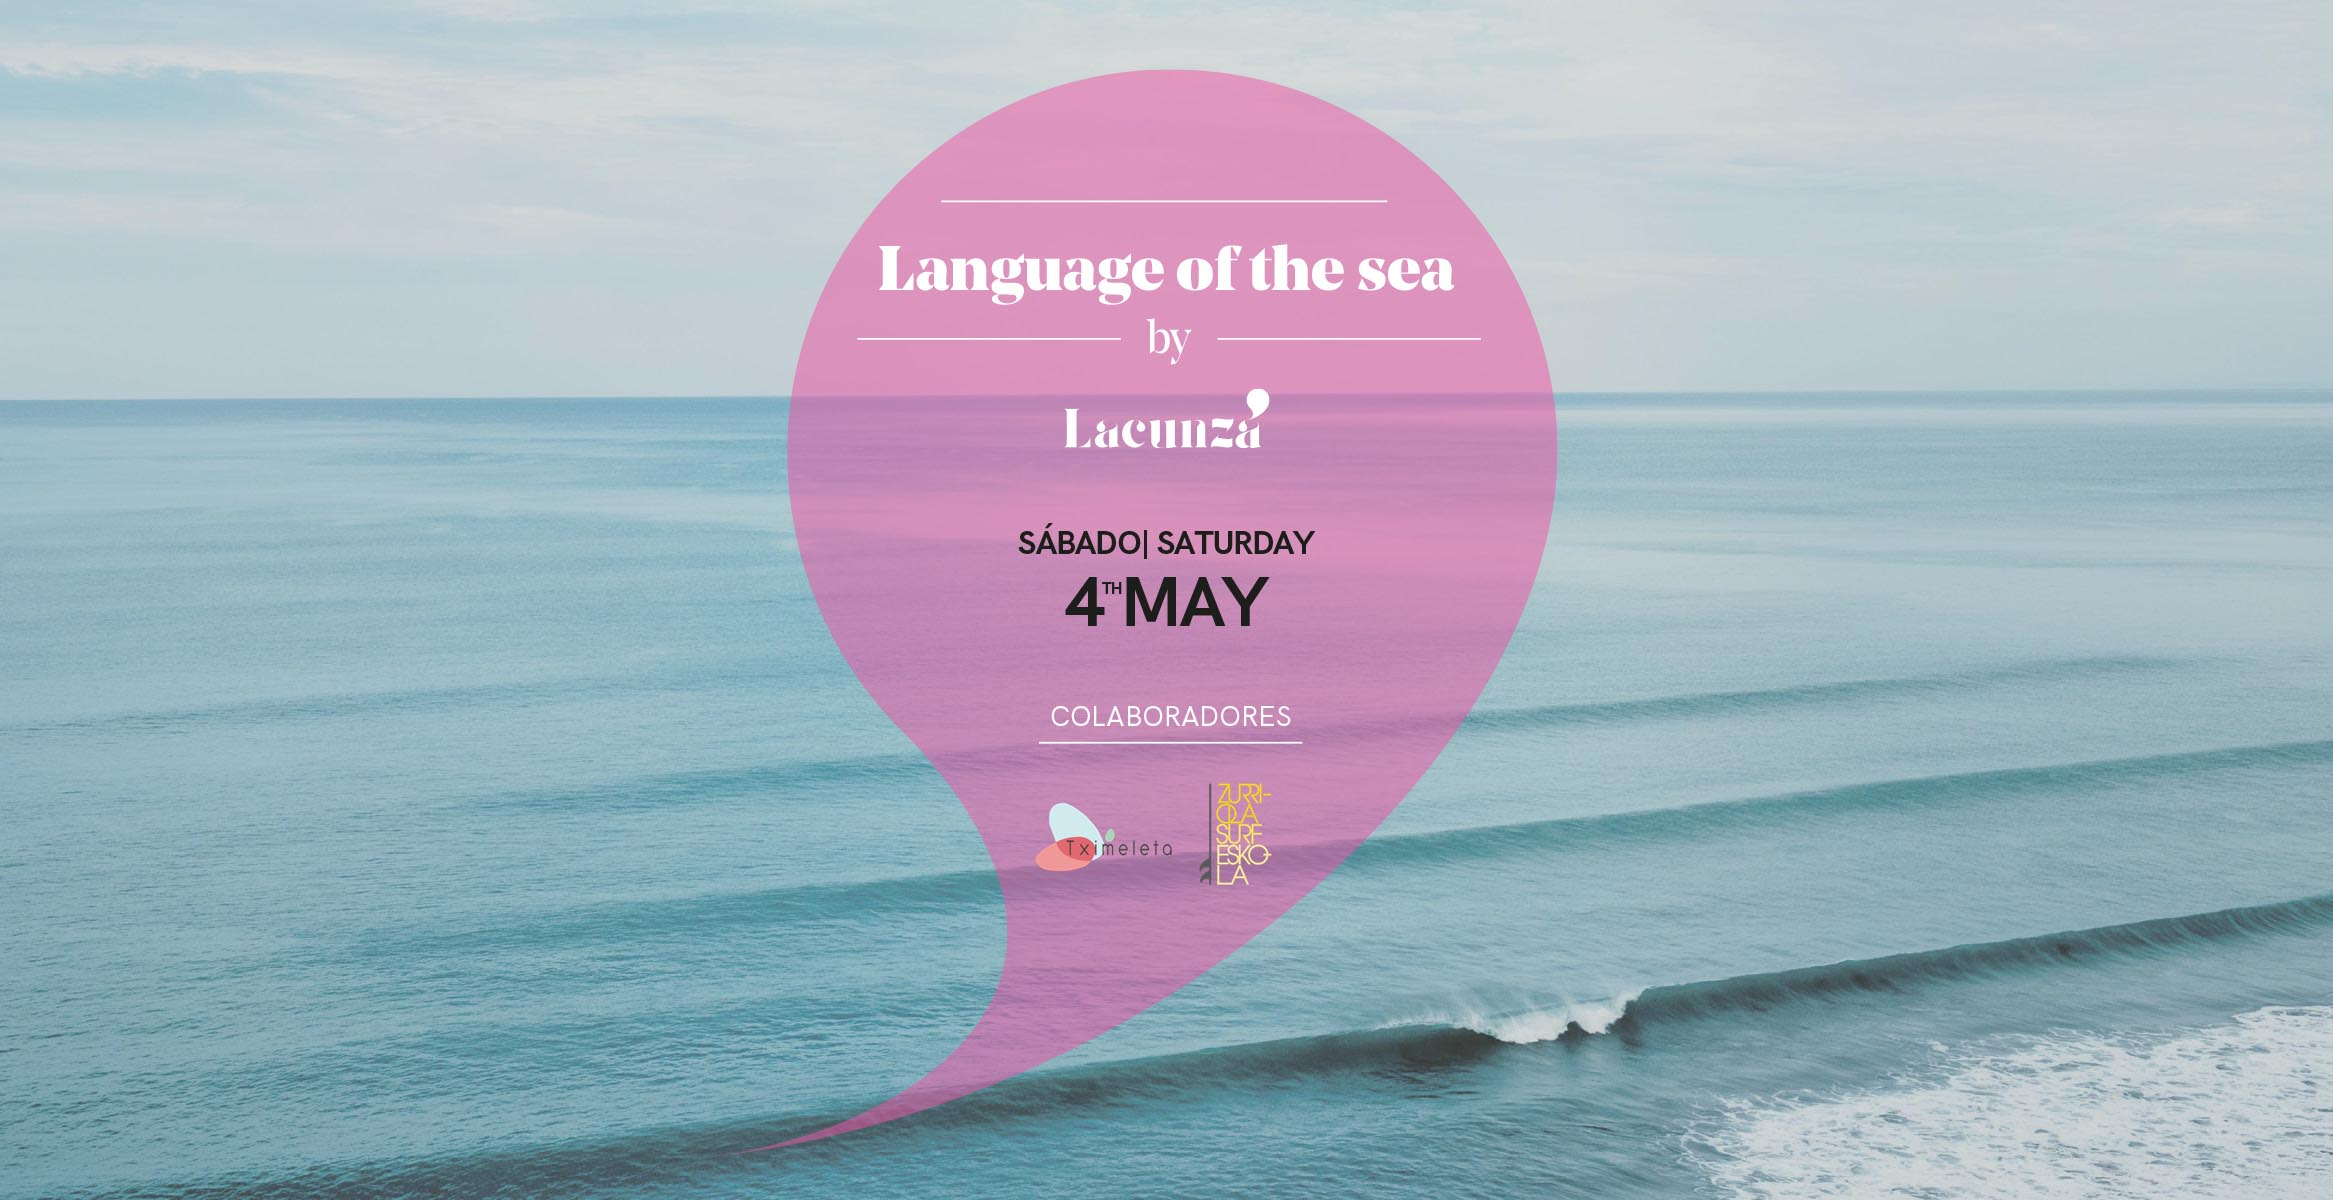 lacunza the language of the sea